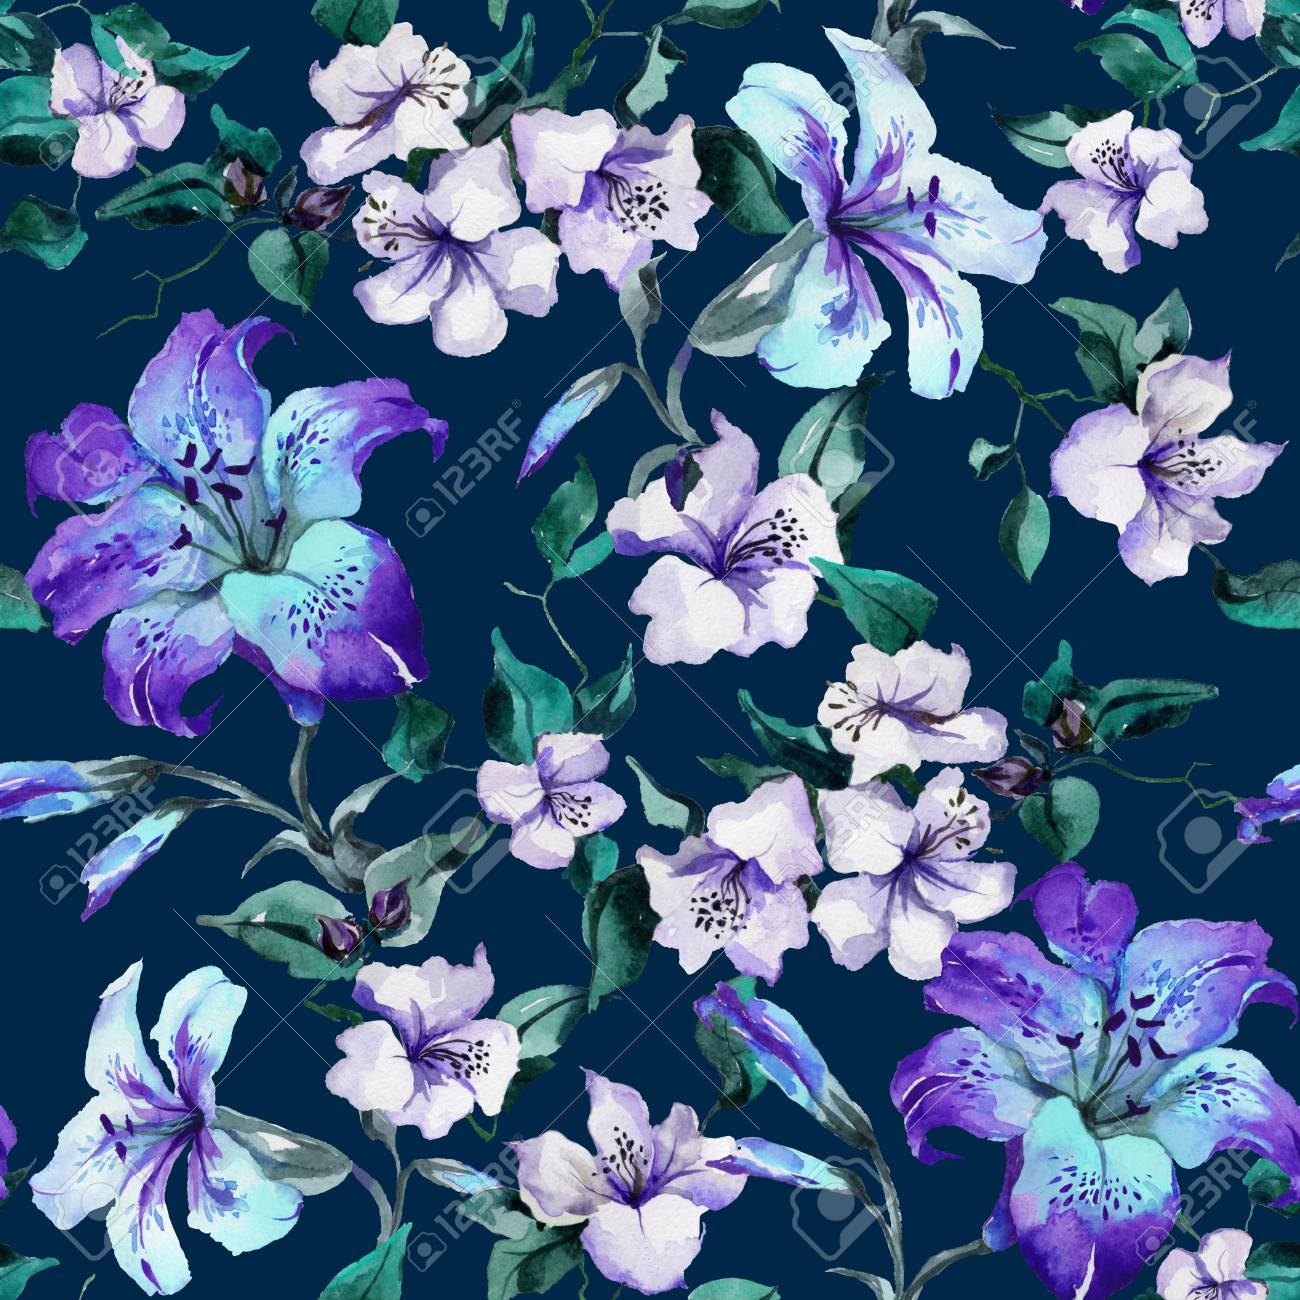 f08e44a5c6ca Beautiful purple tiger lilies on twigs on deep blue background. Seamless  floral pattern. Watercolor